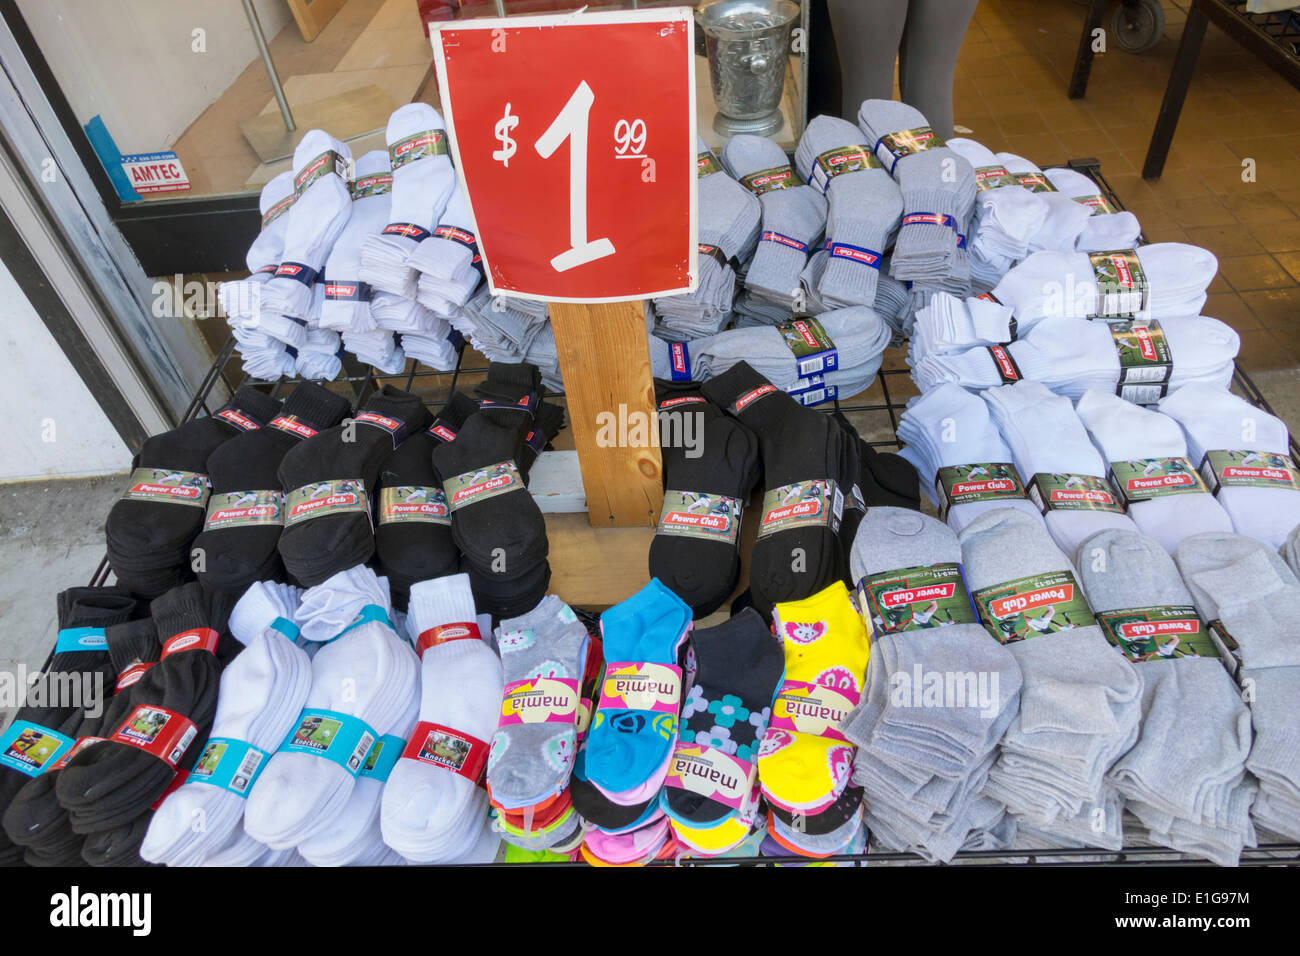 Los Angeles California CA L.A. Downtown shop store retail business shopping sidewalk sale bargain socks pack price $1.99 - Stock Image